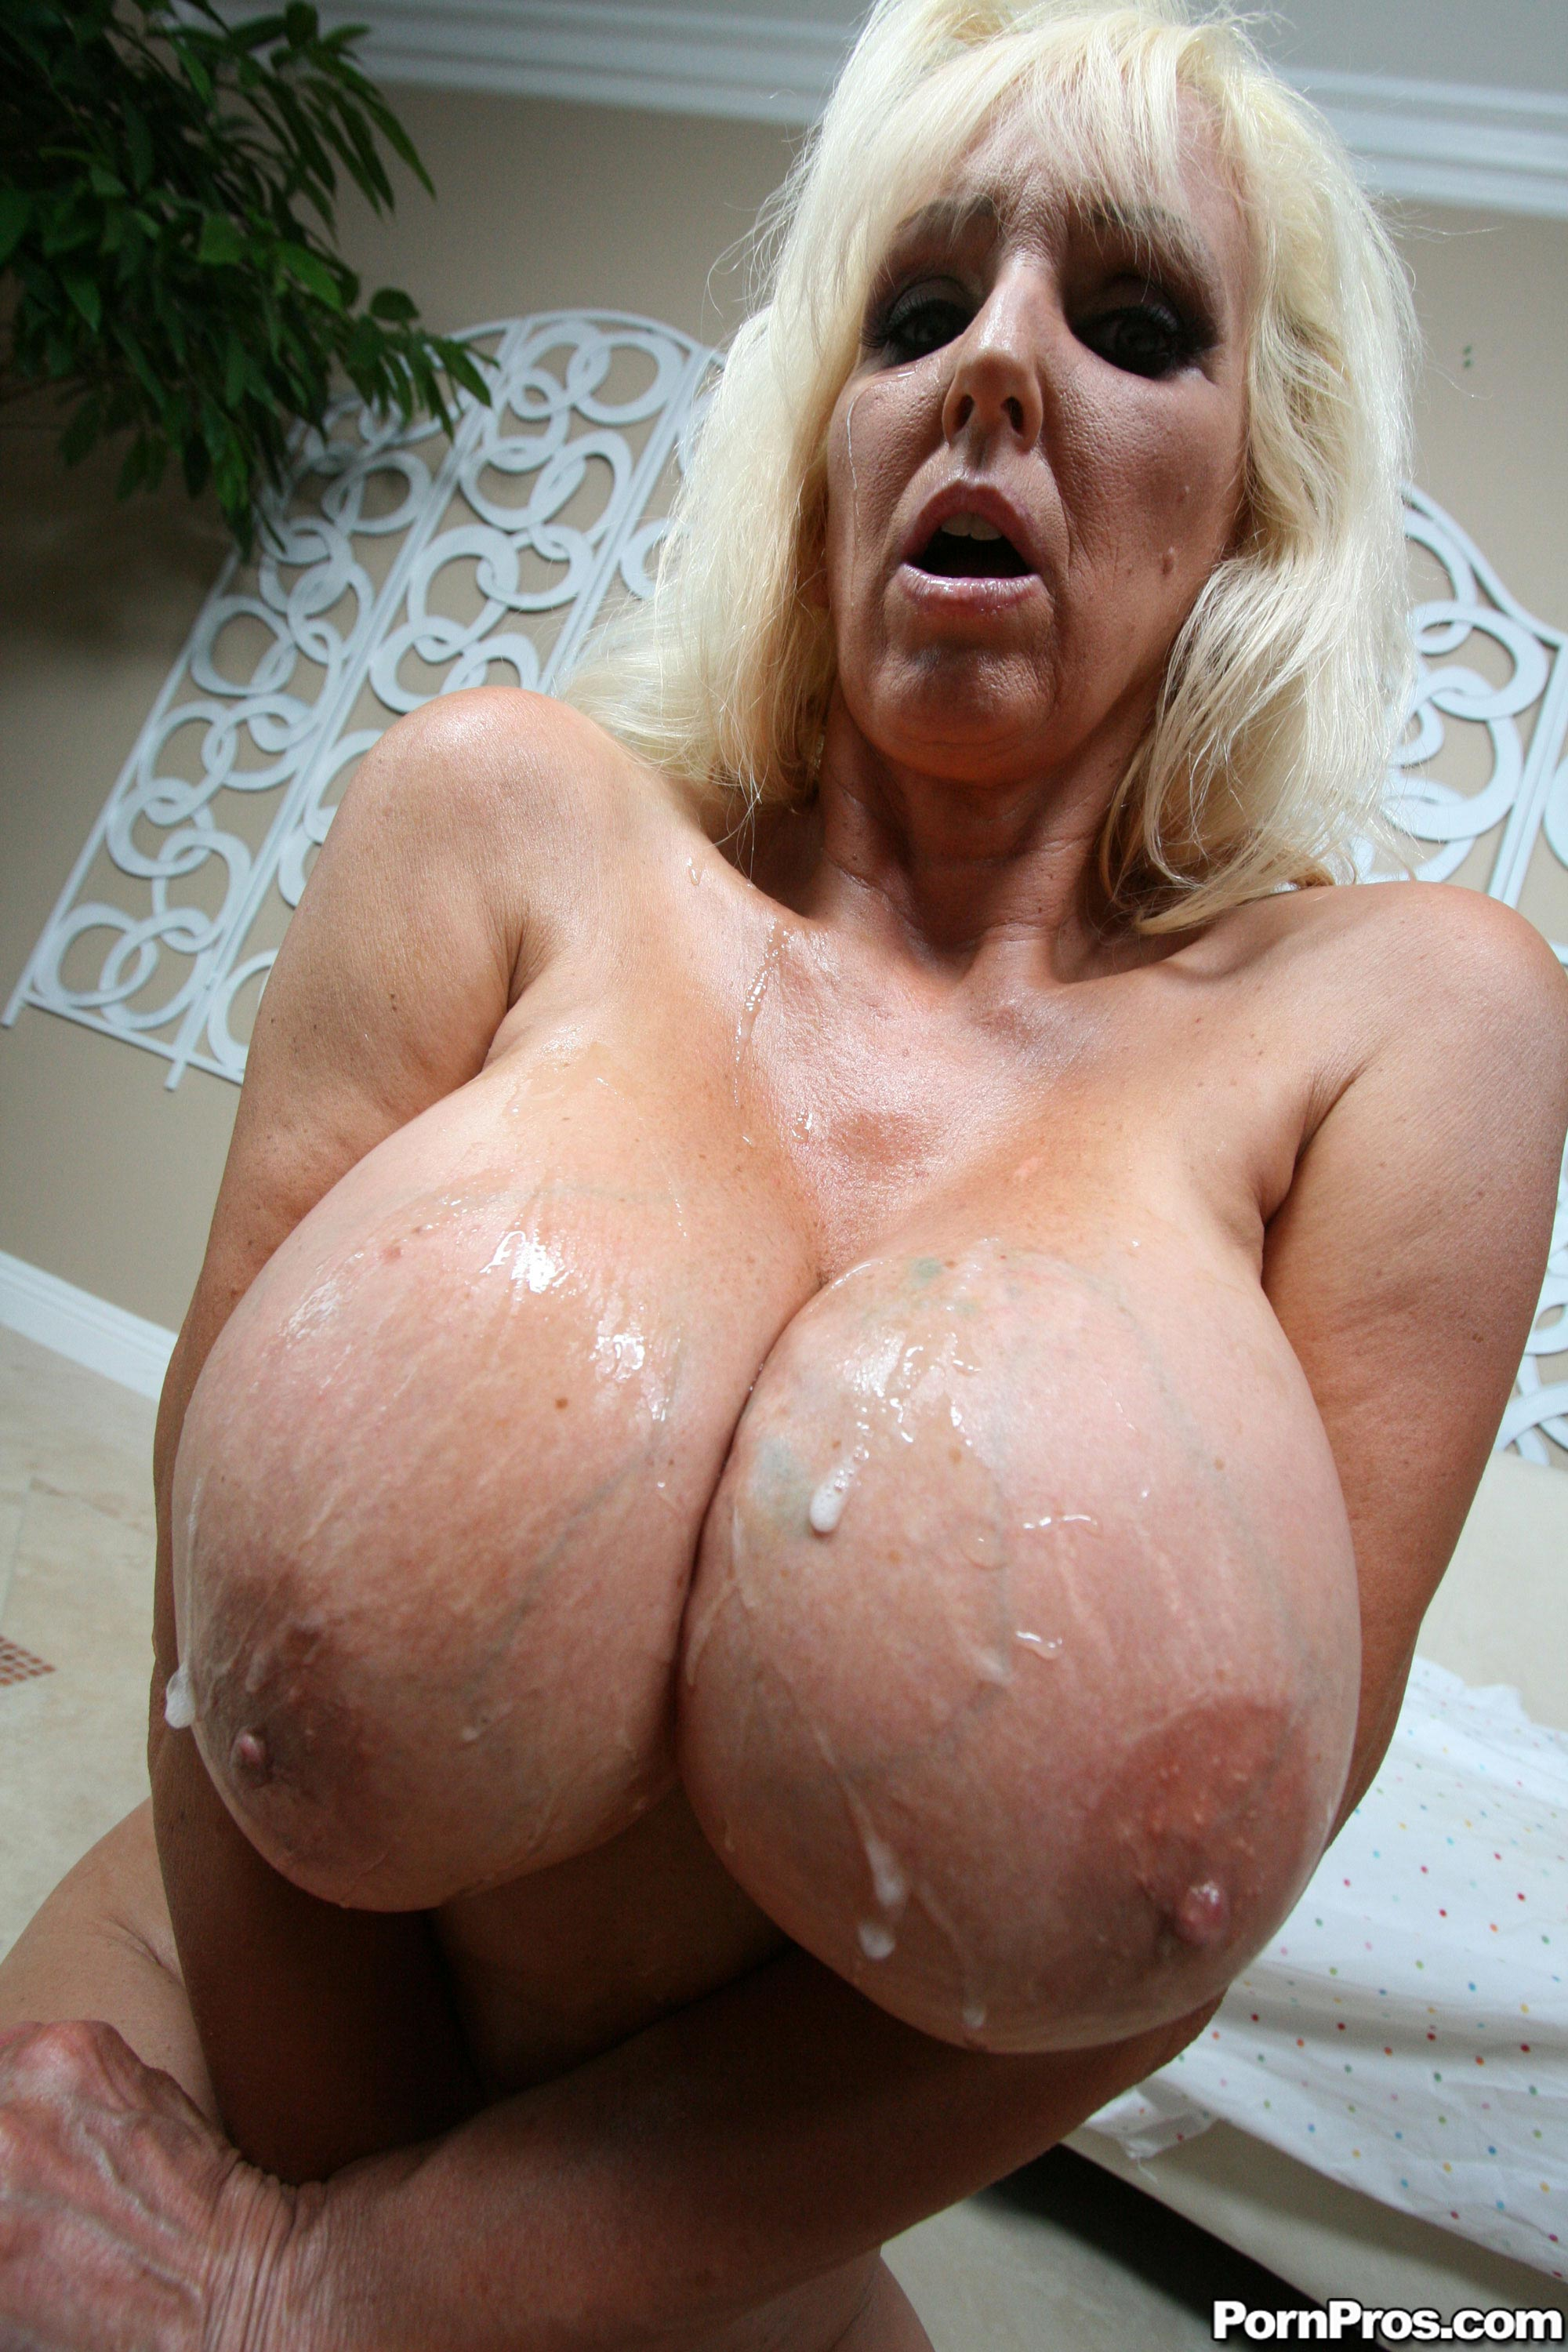 tia cyrus videos abuelas follando